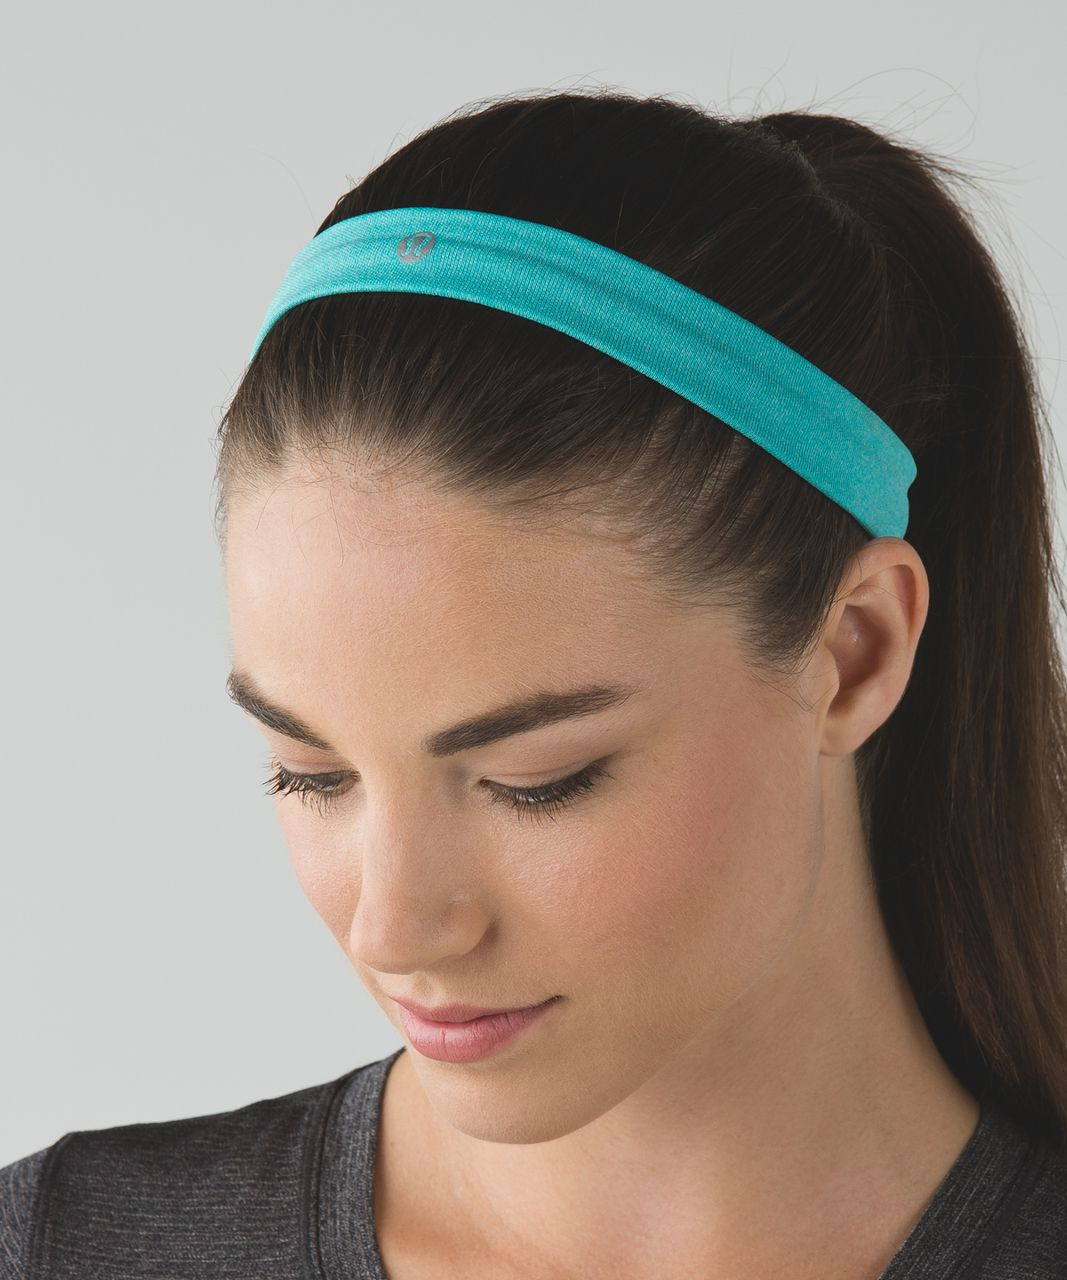 Lululemon Cardio Cross Trainer Headband - Heathered Blue Tropics